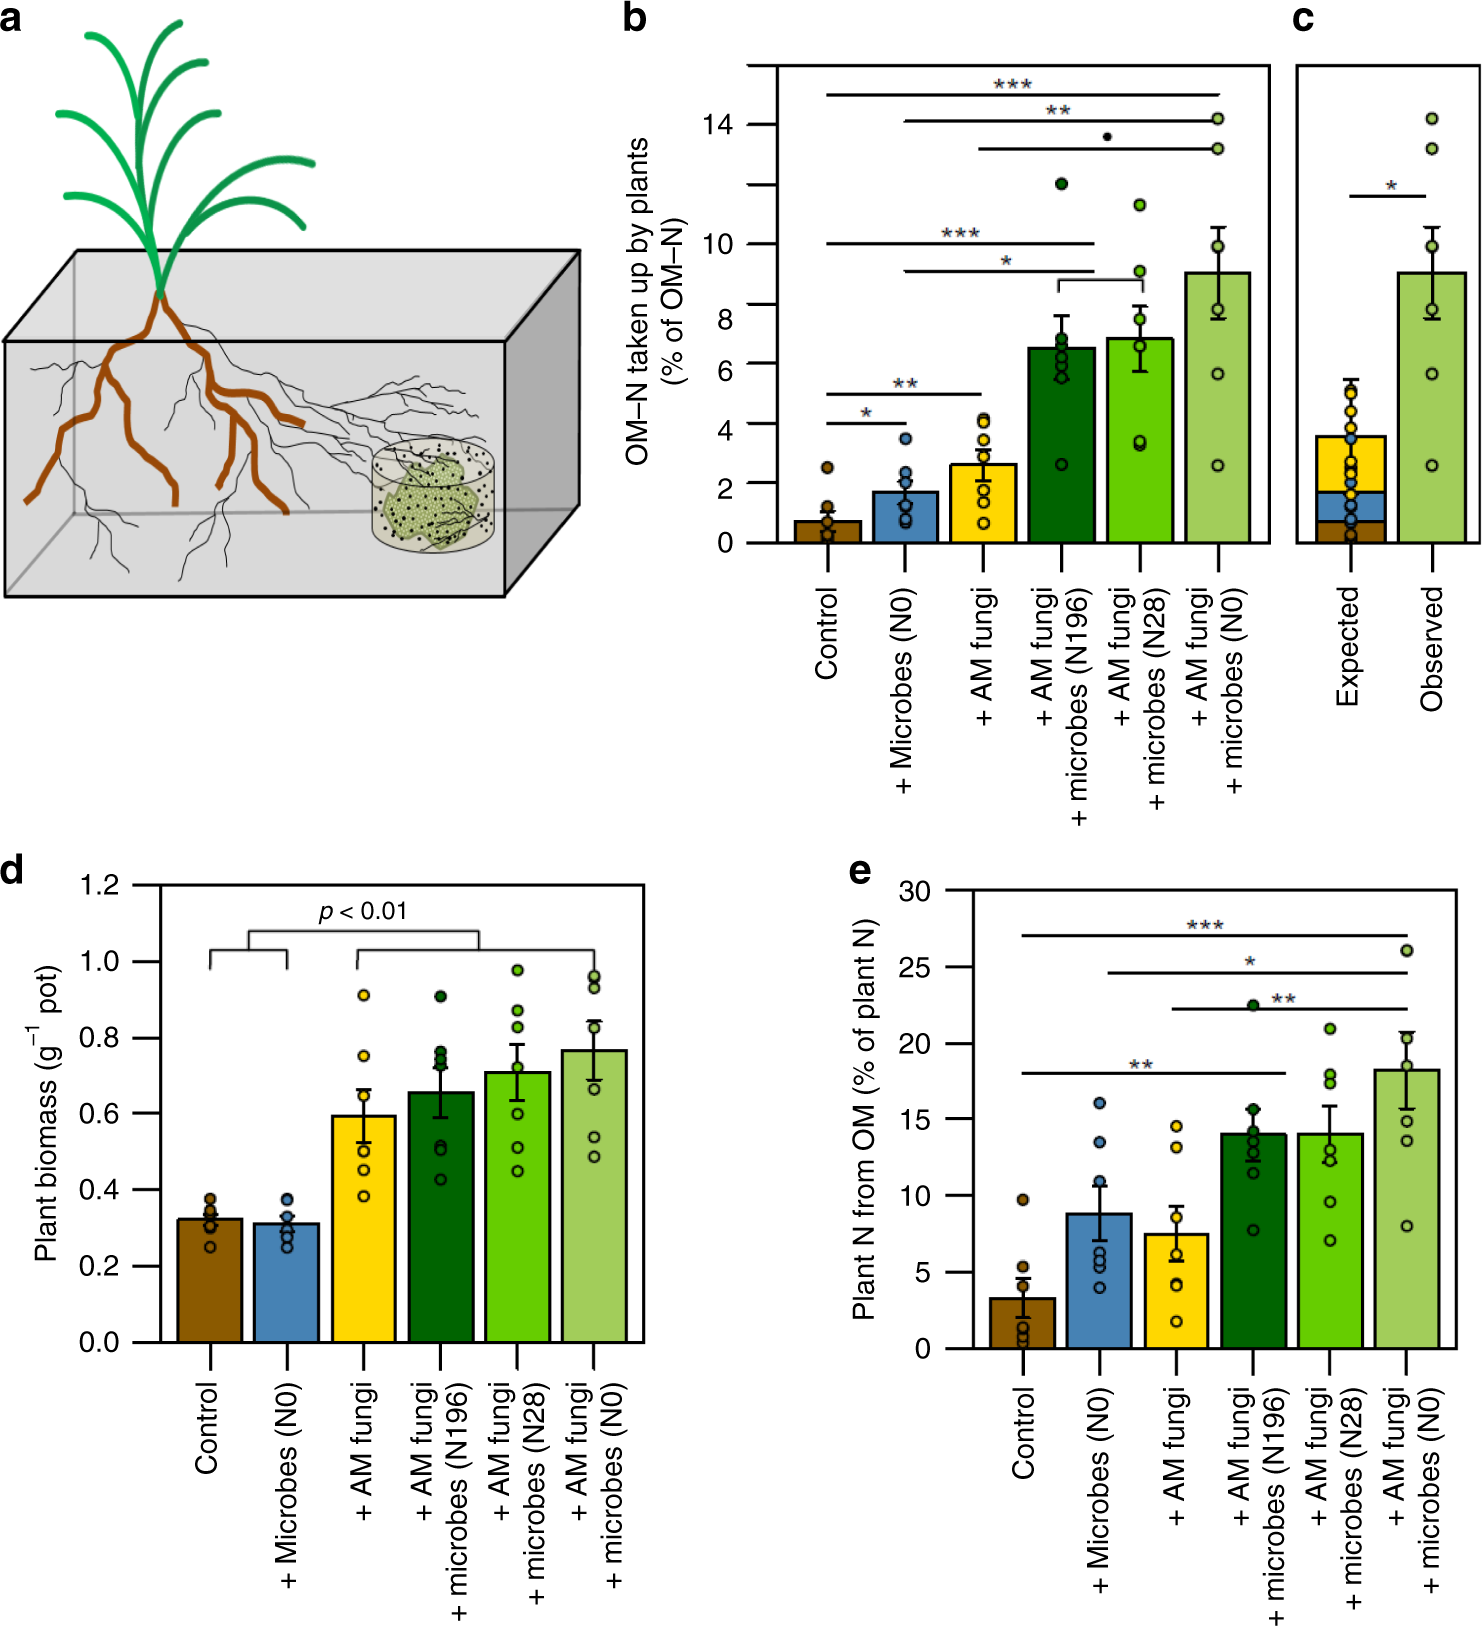 Synergies between mycorrhizal fungi and soil microbial